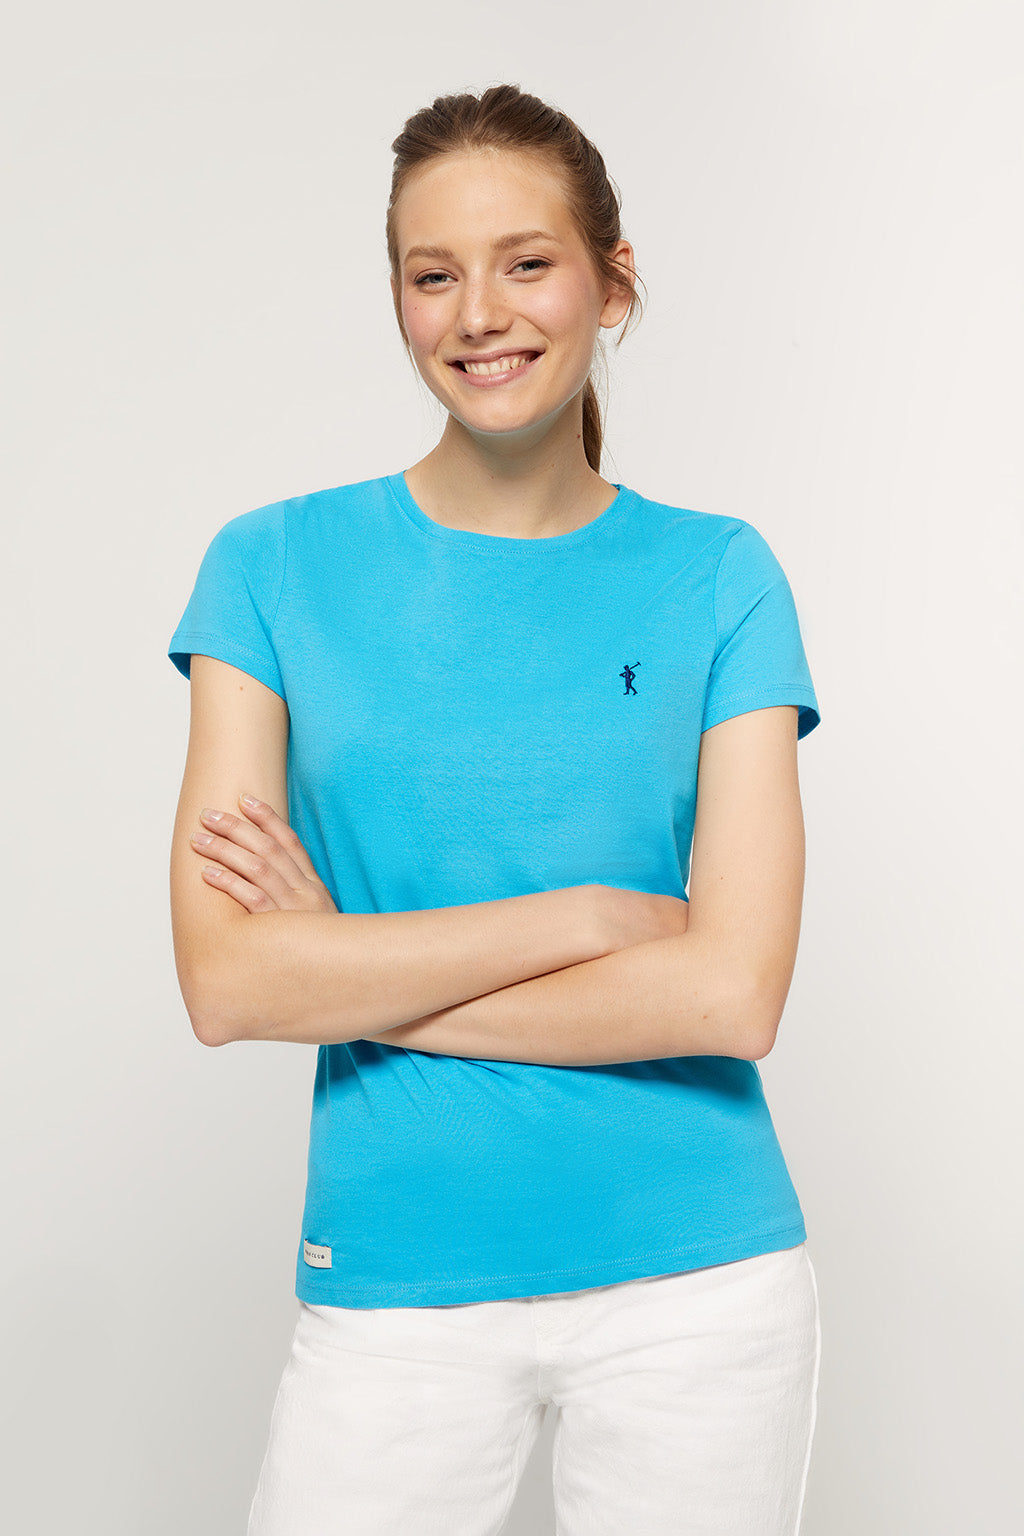 Turquoise T-shirt with embroidered logo